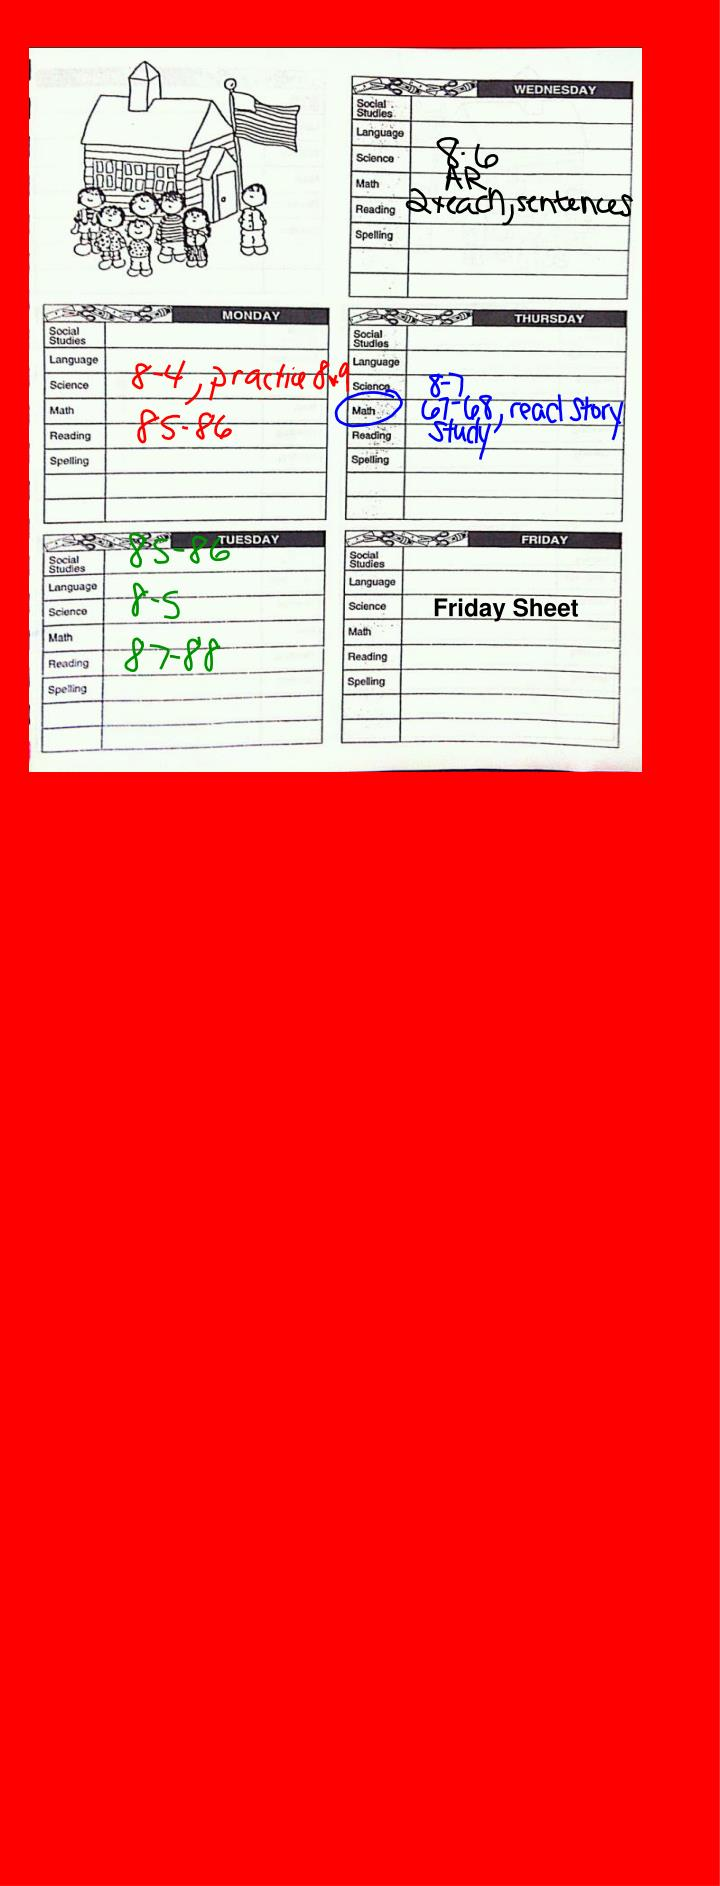 Friday Sheet